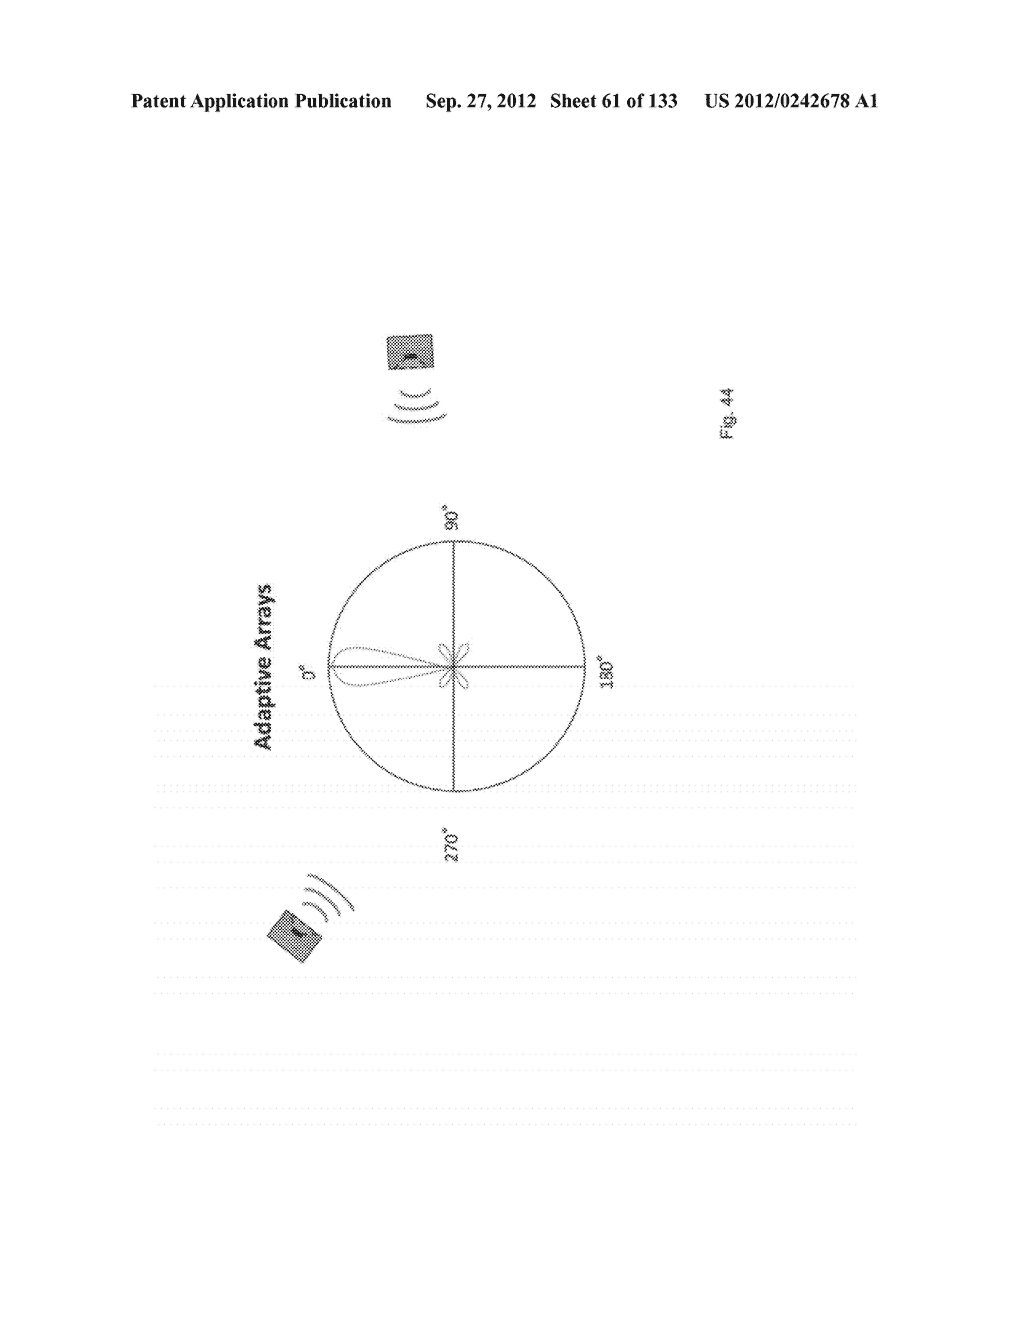 SEE-THROUGH NEAR-EYE DISPLAY GLASSES INCLUDING AN AUTO-BRIGHTNESS CONTROL     FOR THE DISPLAY BRIGHTNESS BASED ON THE BRIGHTNESS IN THE ENVIRONMENT - diagram, schematic, and image 62